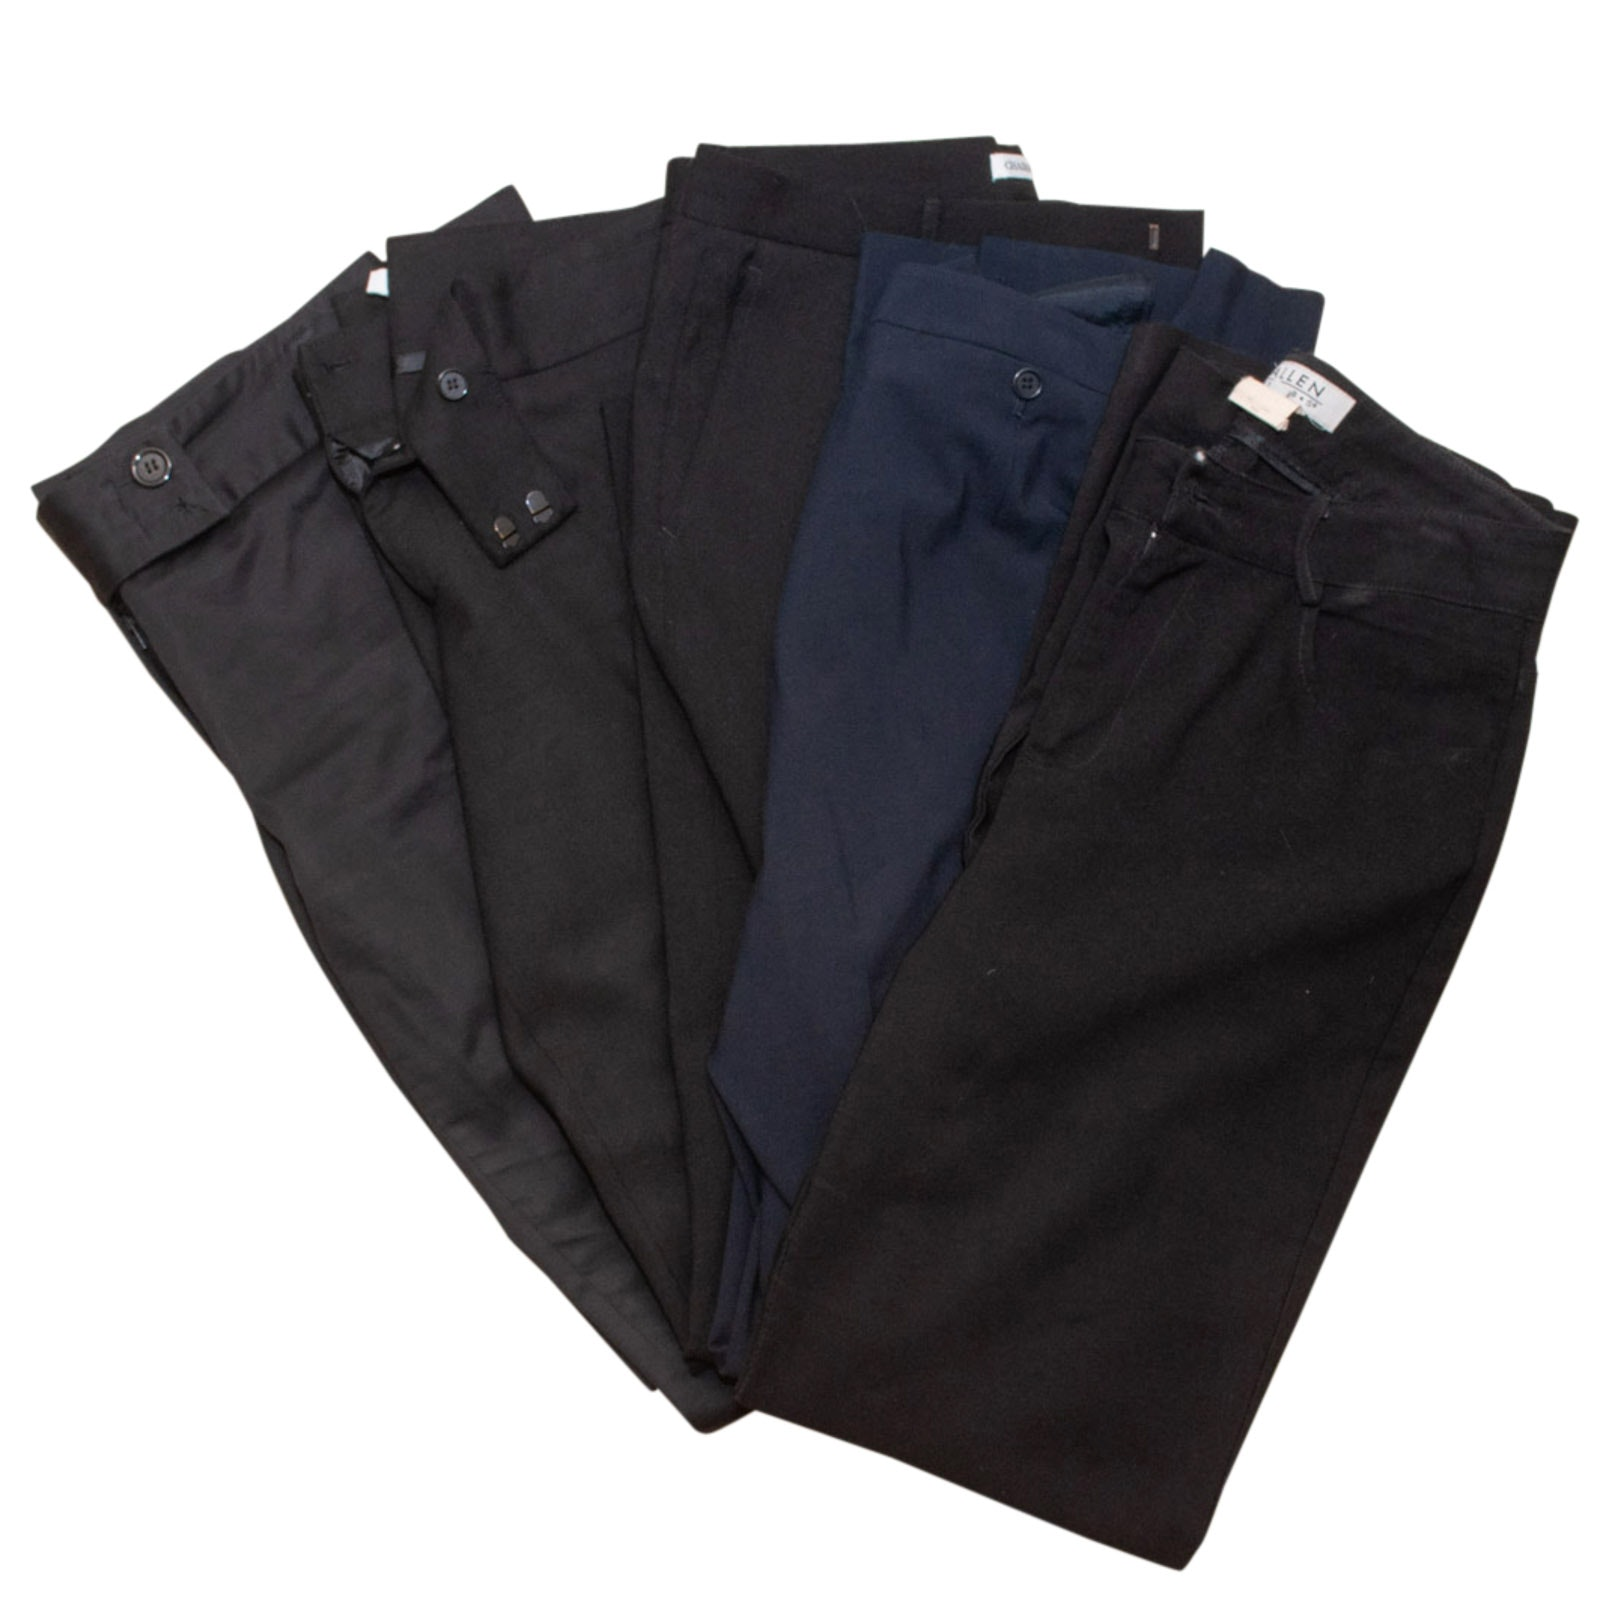 Women's Dress Pants Including Tahari, Kenar and Allen by Allen Schwartz